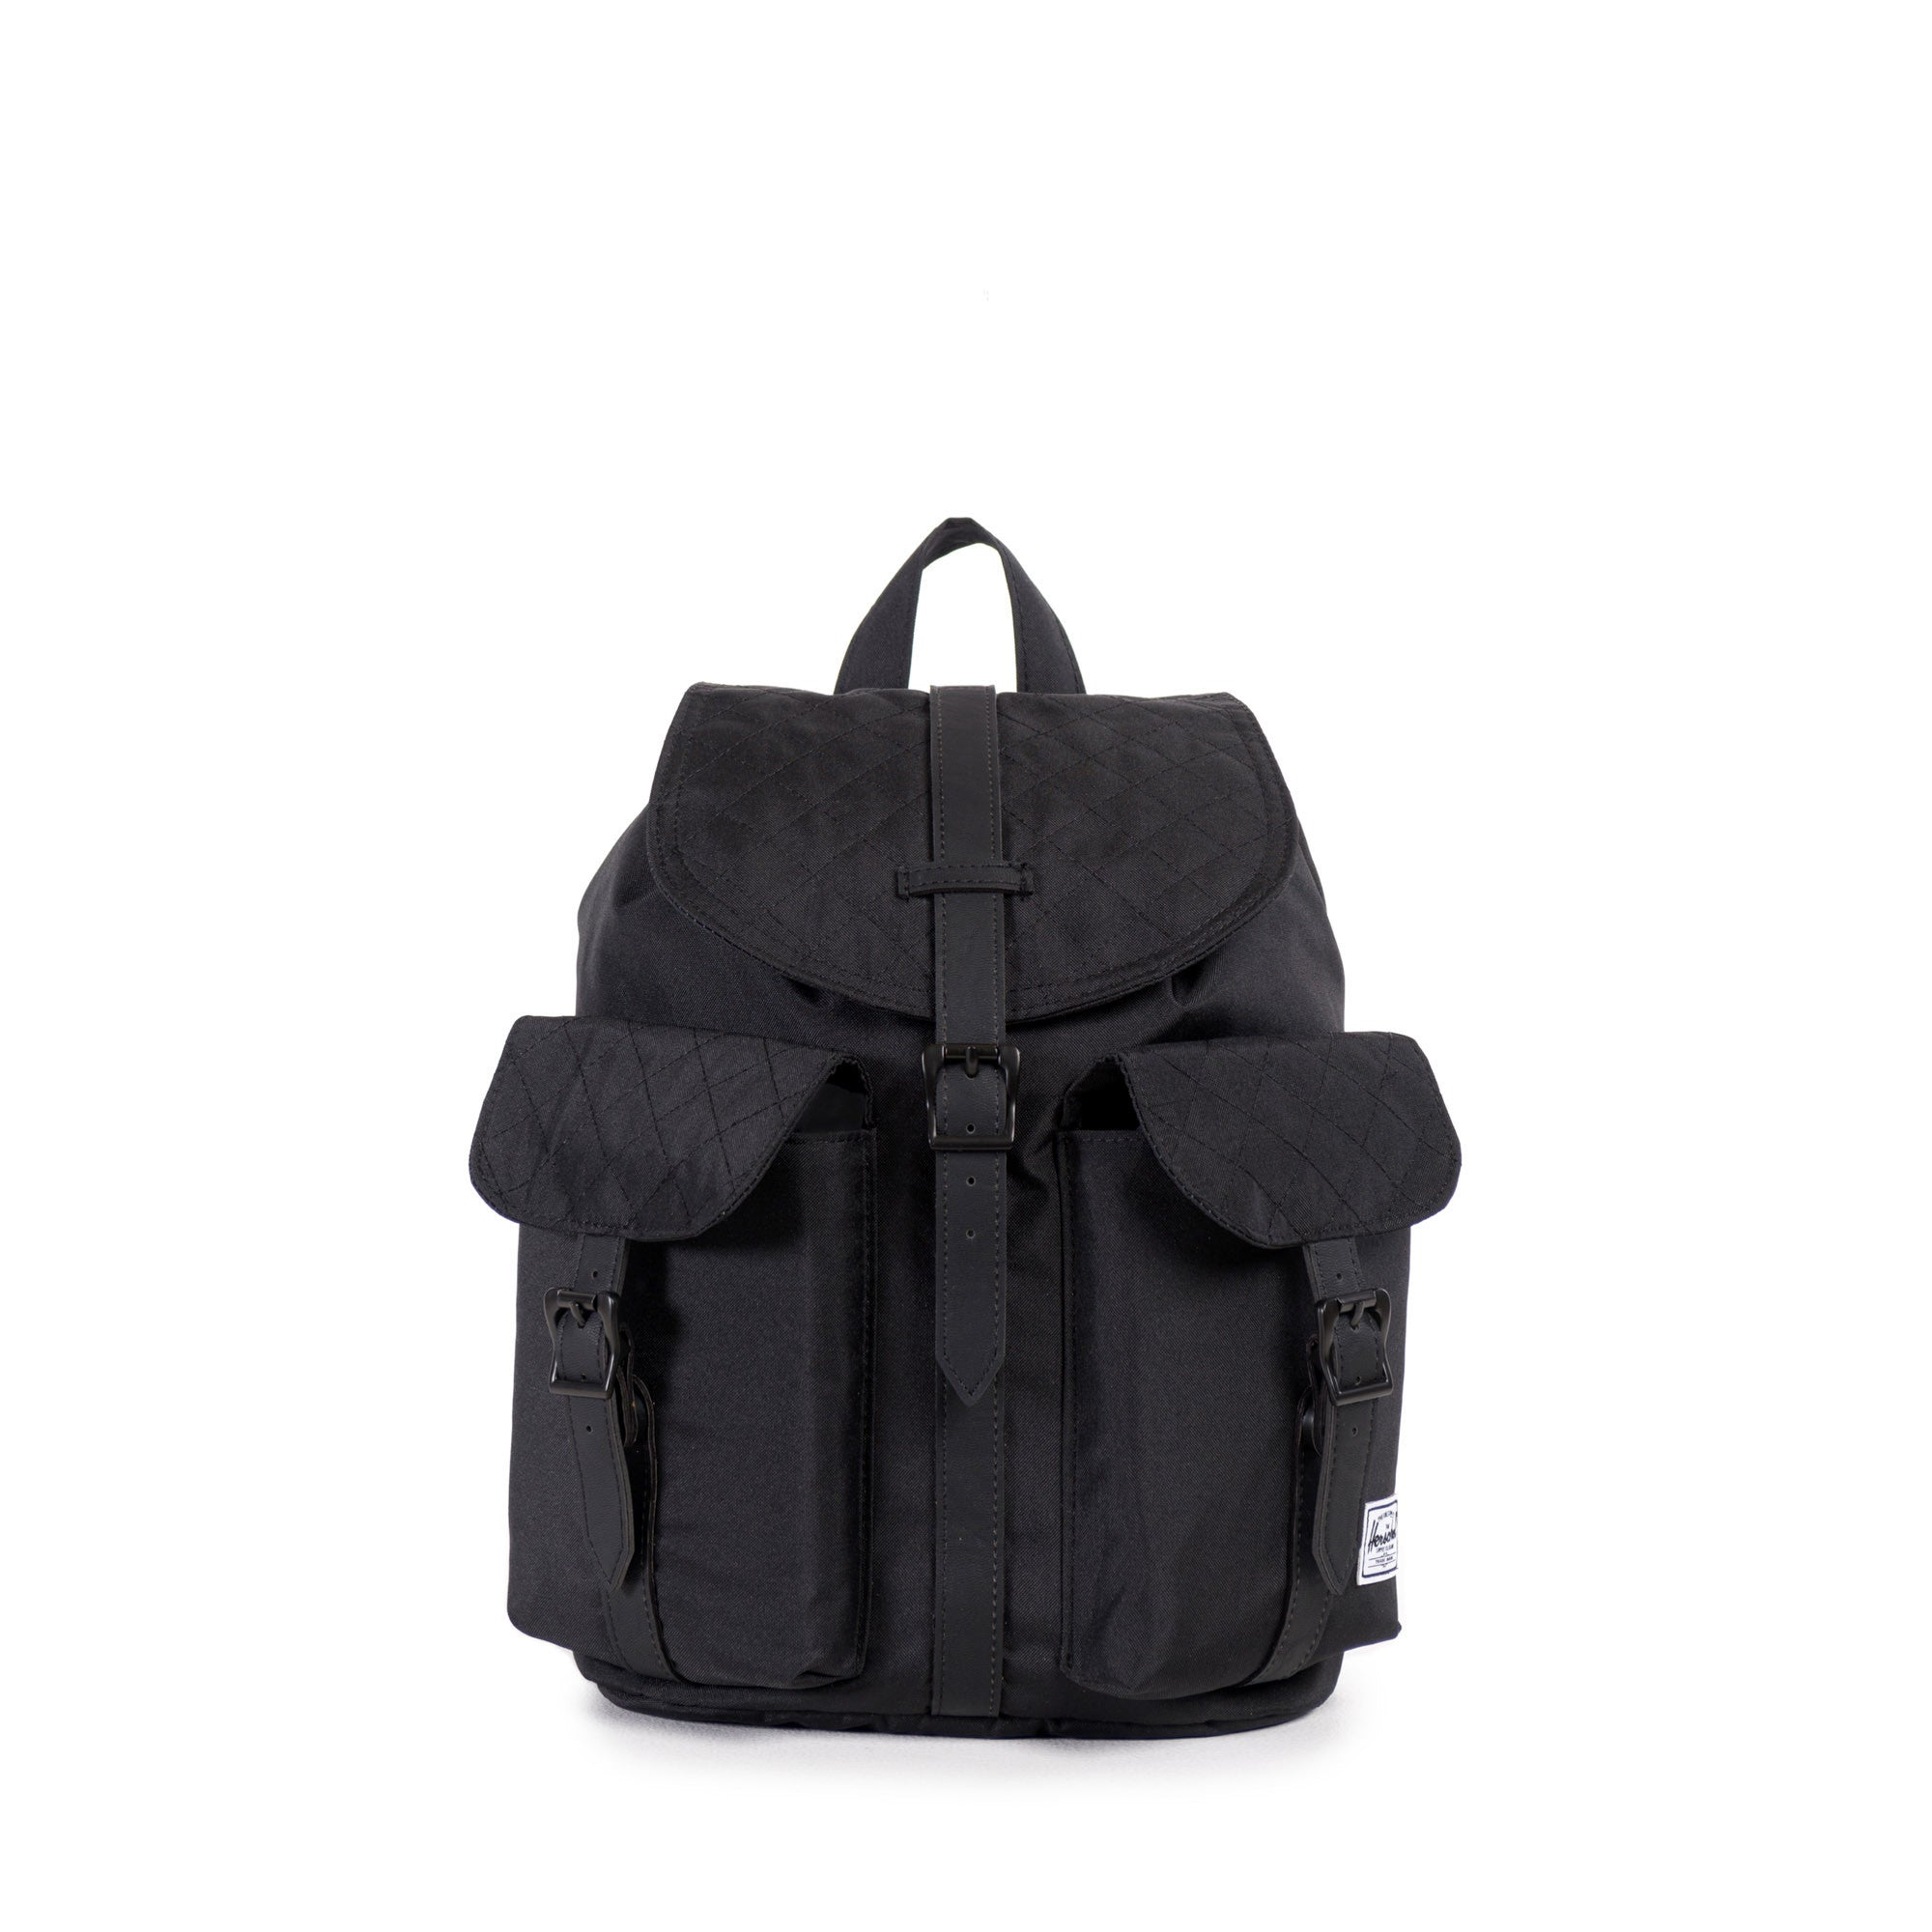 Herschel Supply Co. - Dawson Mid-Volume Backpack, Black Quilted - The Giant Peach